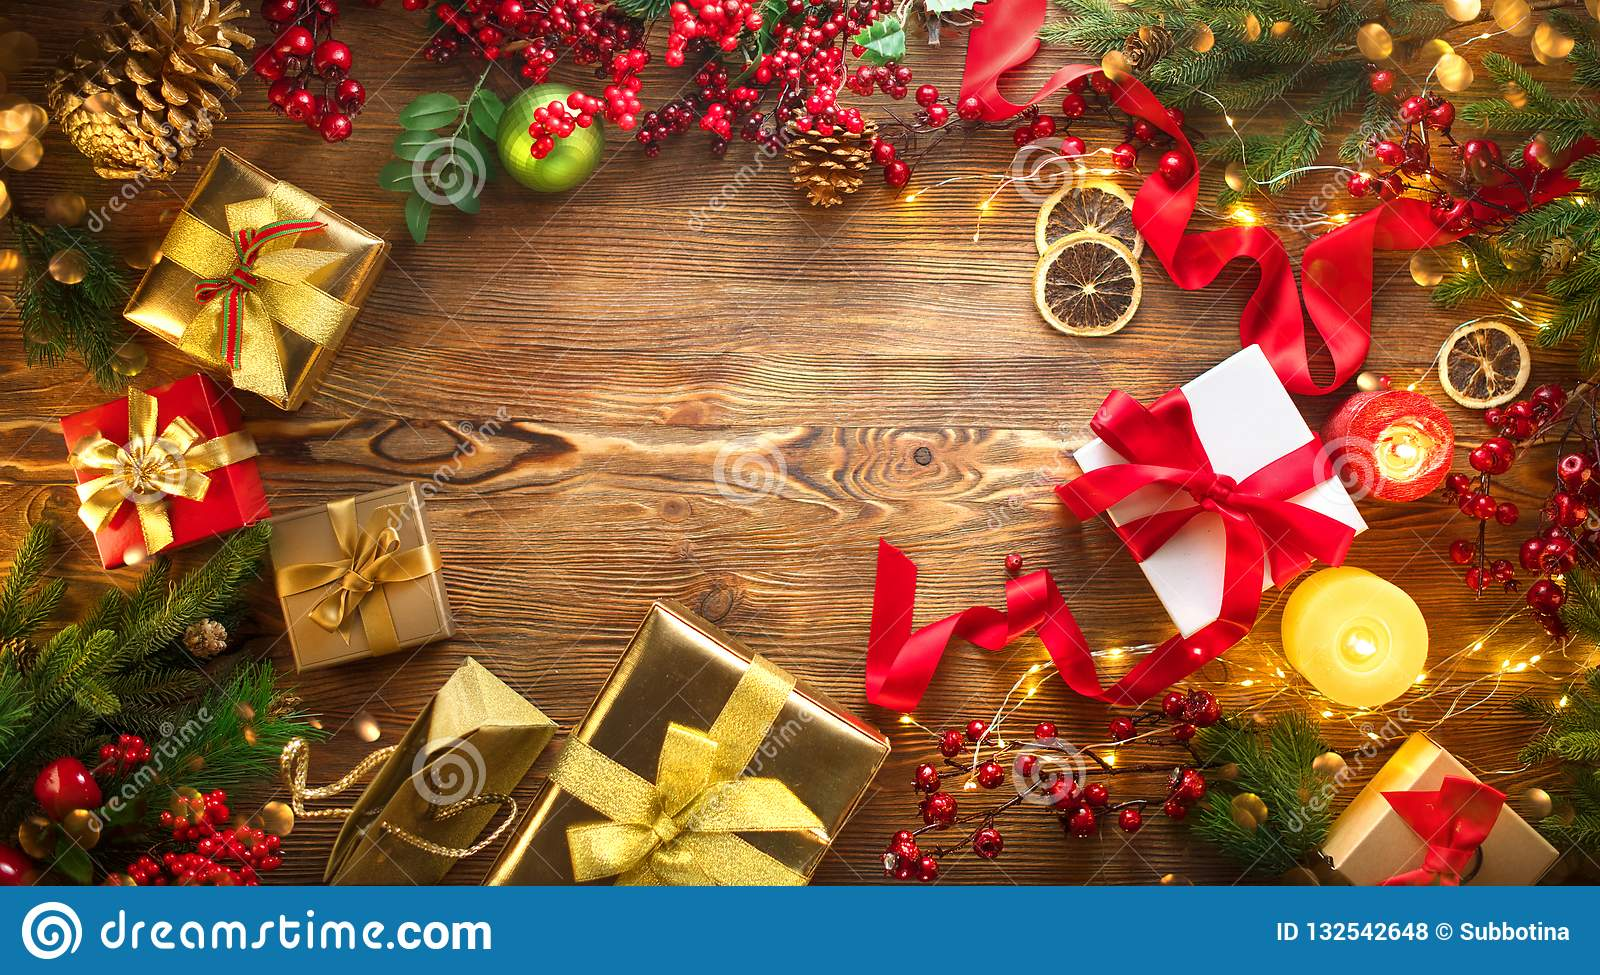 Christmas scene. Colorful wrapped gift boxes, beautiful Xmas and New Year backdrop with gift boxes, candles and lighting garland